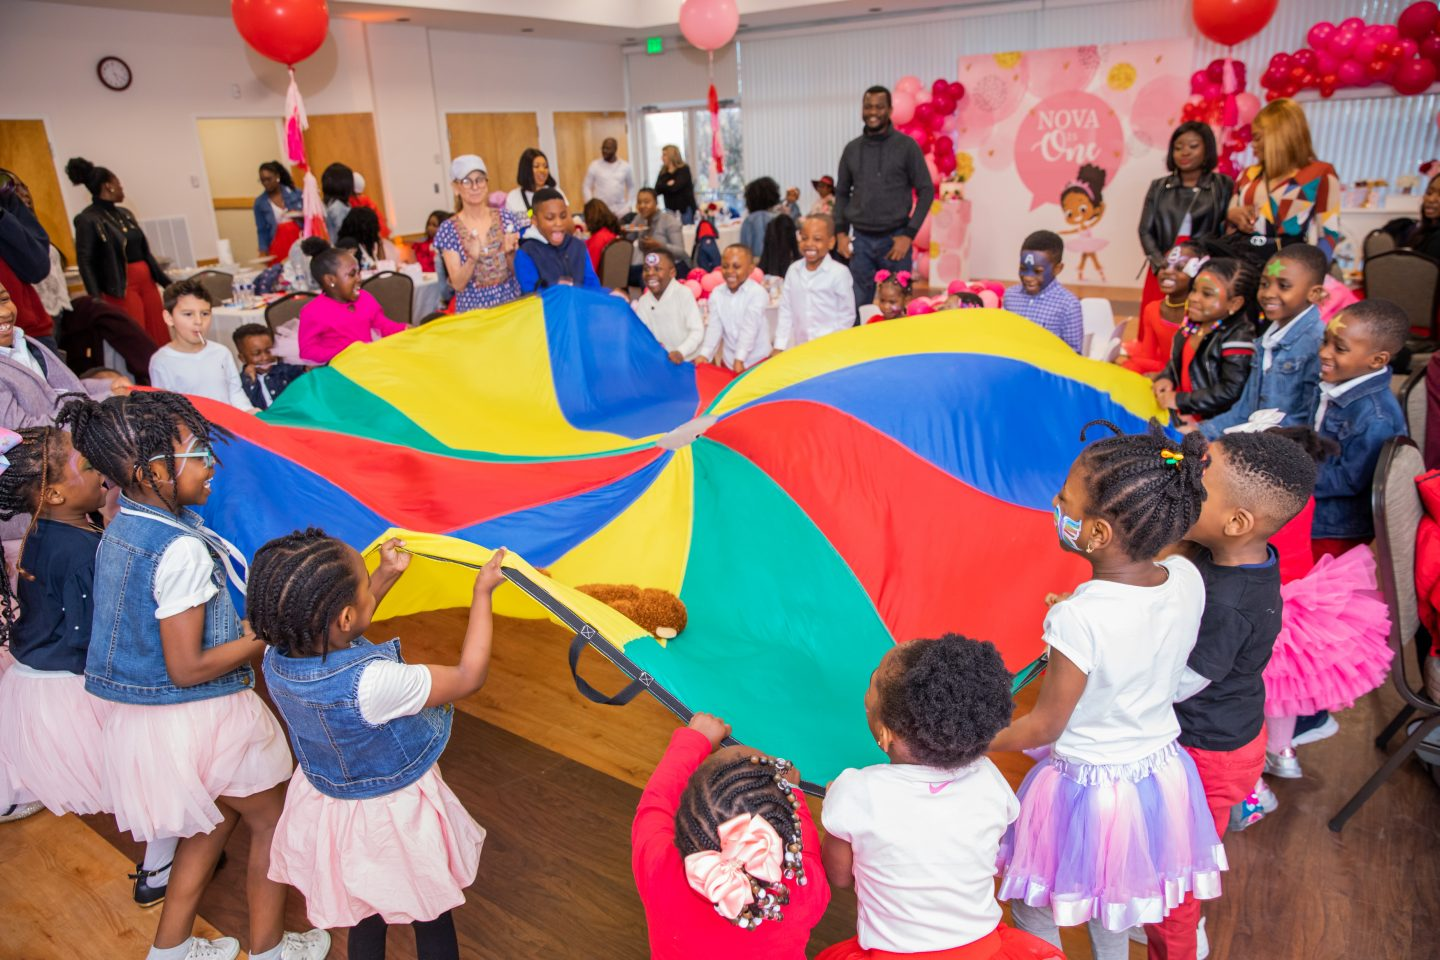 stella-adewunmi-of-jadore-fashion-blog-shares-how-to-celebrate-a-toddlers-valentines-day-birthday